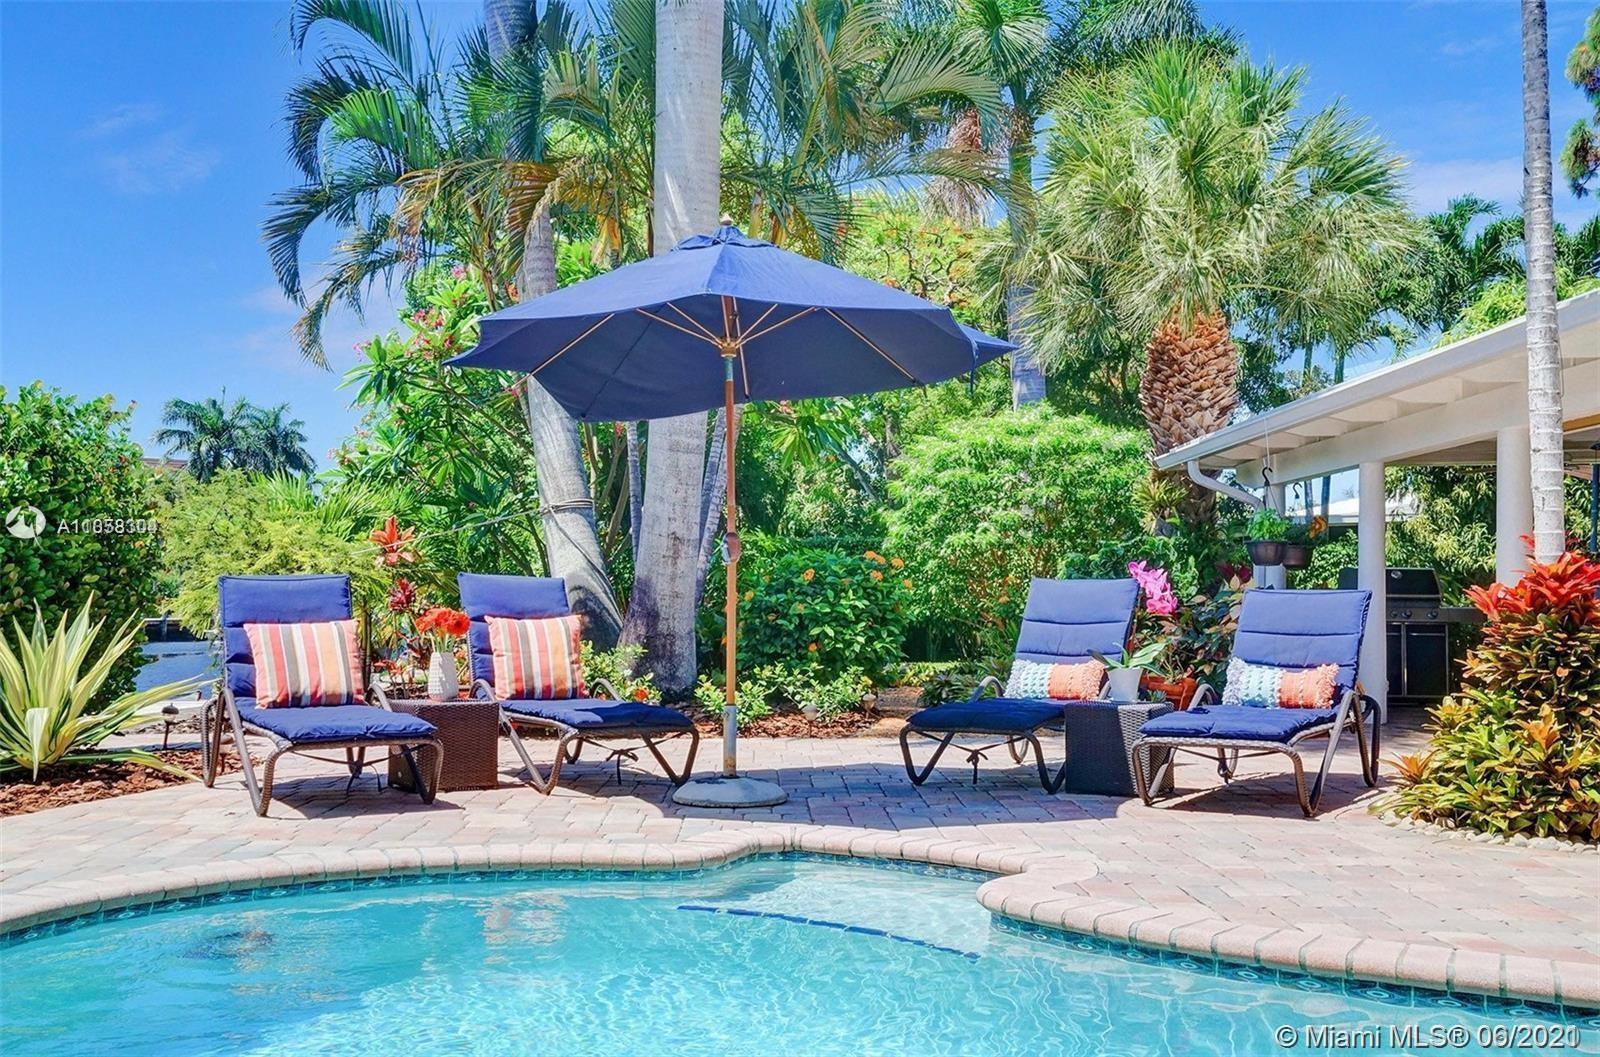 Looking for a Private Tropical Oasis in East Wilton Manors? You just found it! This 2 Bedroom 2 bath